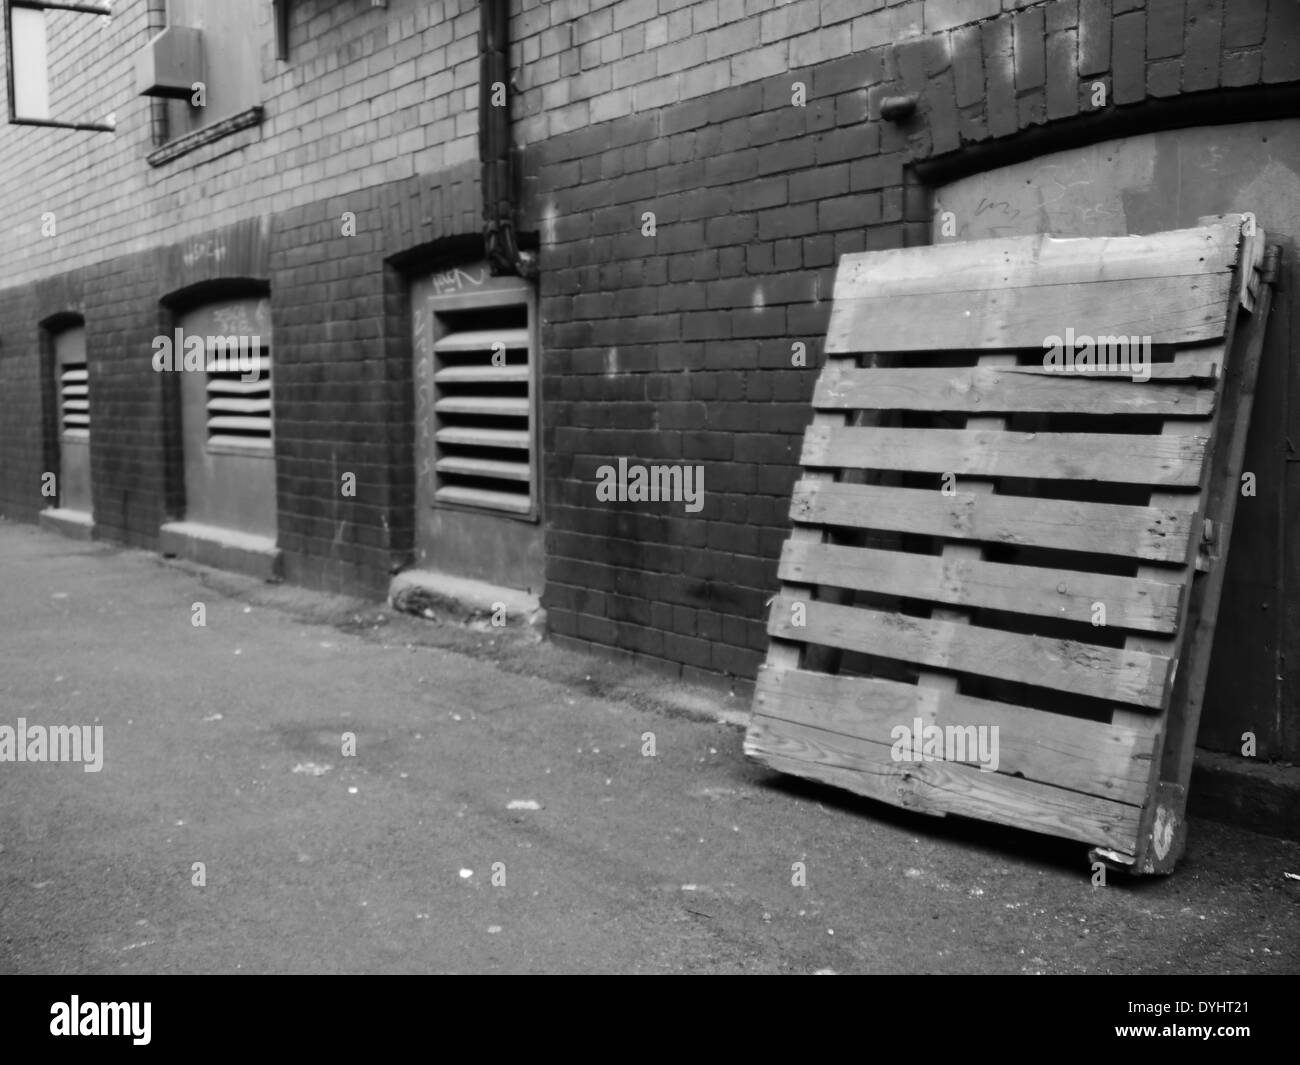 Monochrome image - Urban street scene showing alley with wooden pallet, and ventilation doors, Newcastle upon Tyne, England, UK - Stock Image